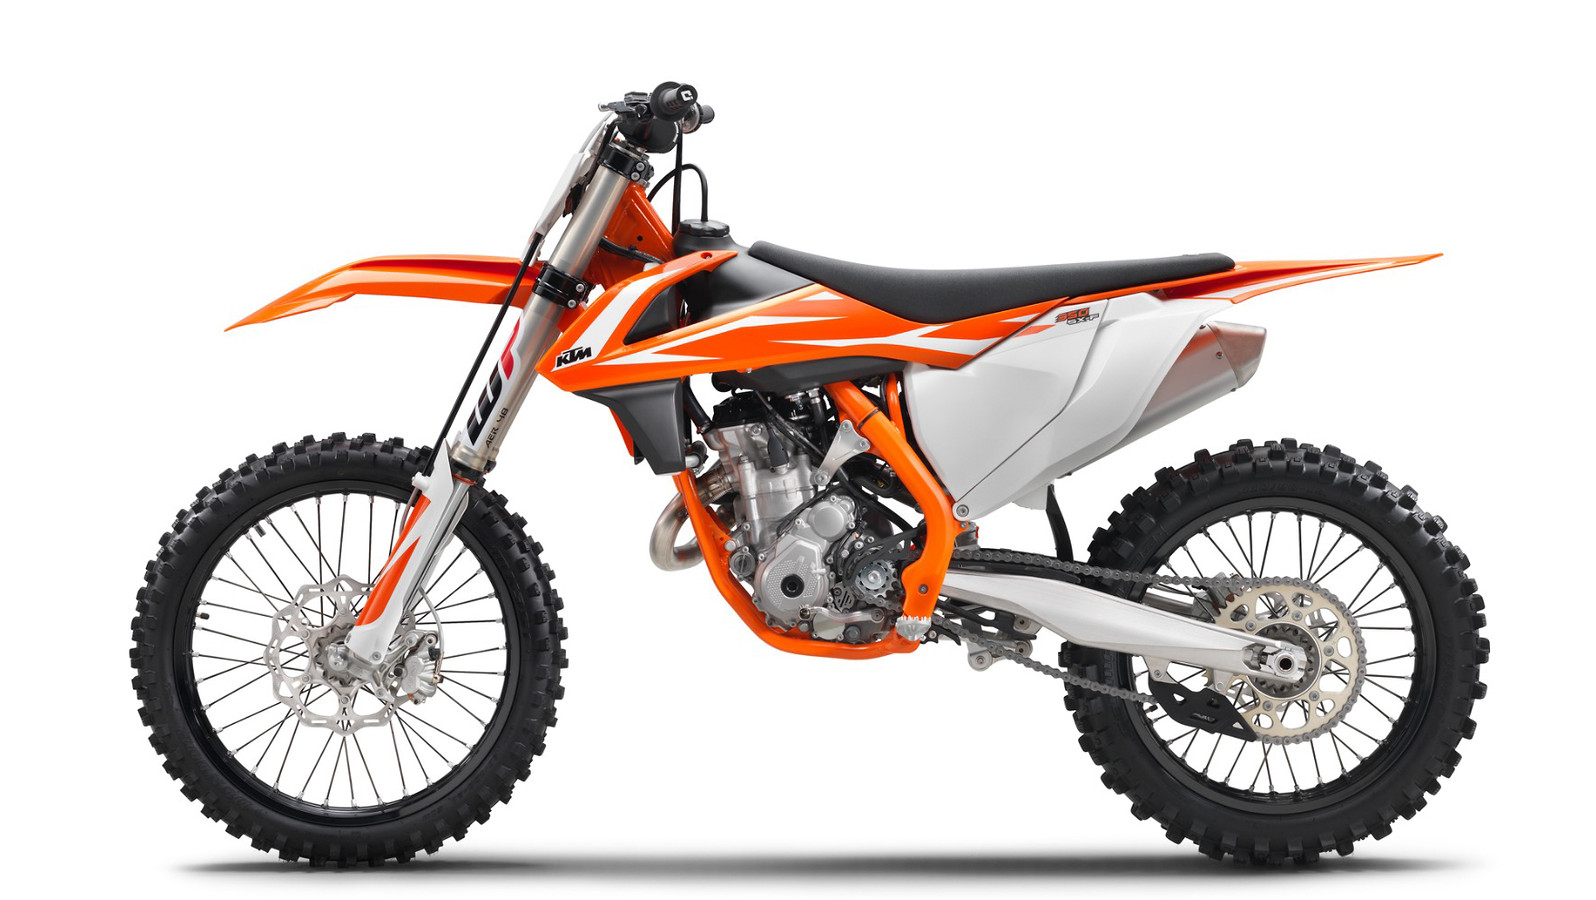 2018 ktm 350 sx f reviews comparisons specs. Black Bedroom Furniture Sets. Home Design Ideas